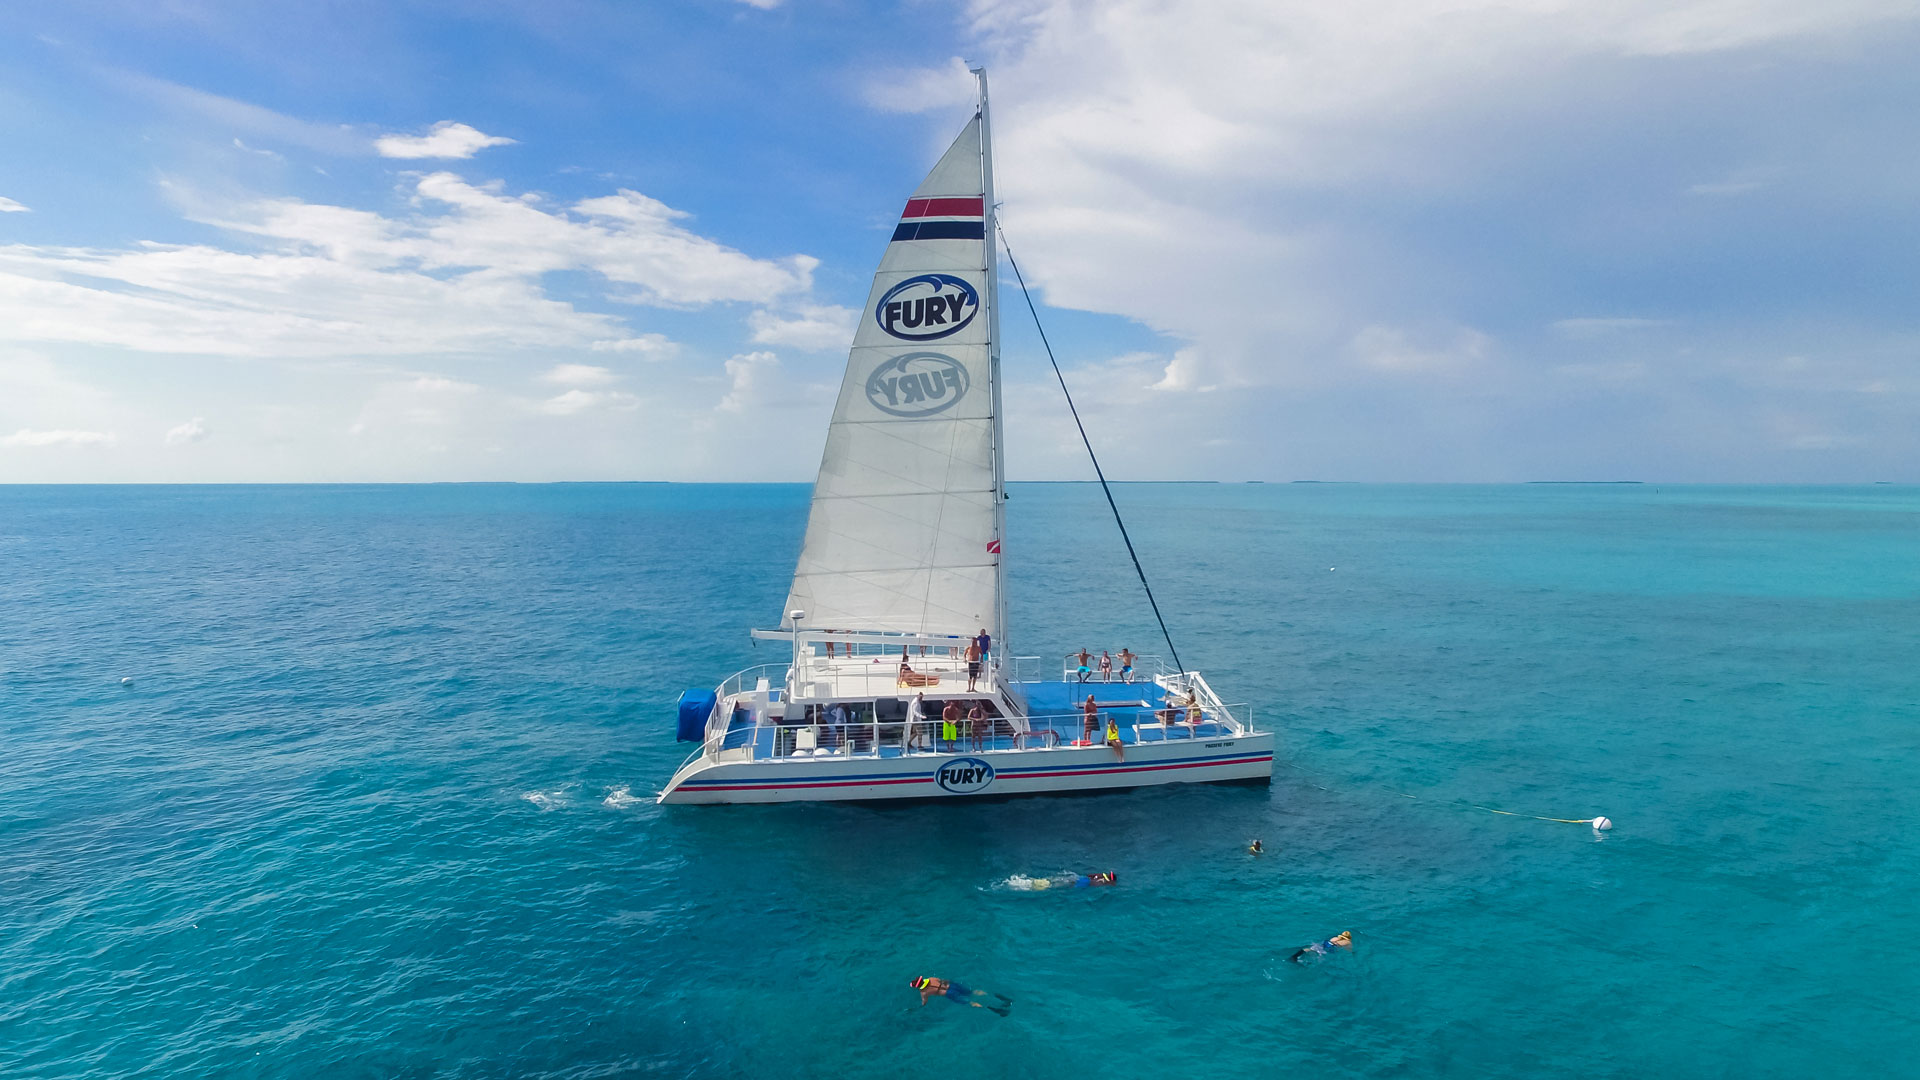 Catamaran in the gulf of mexico